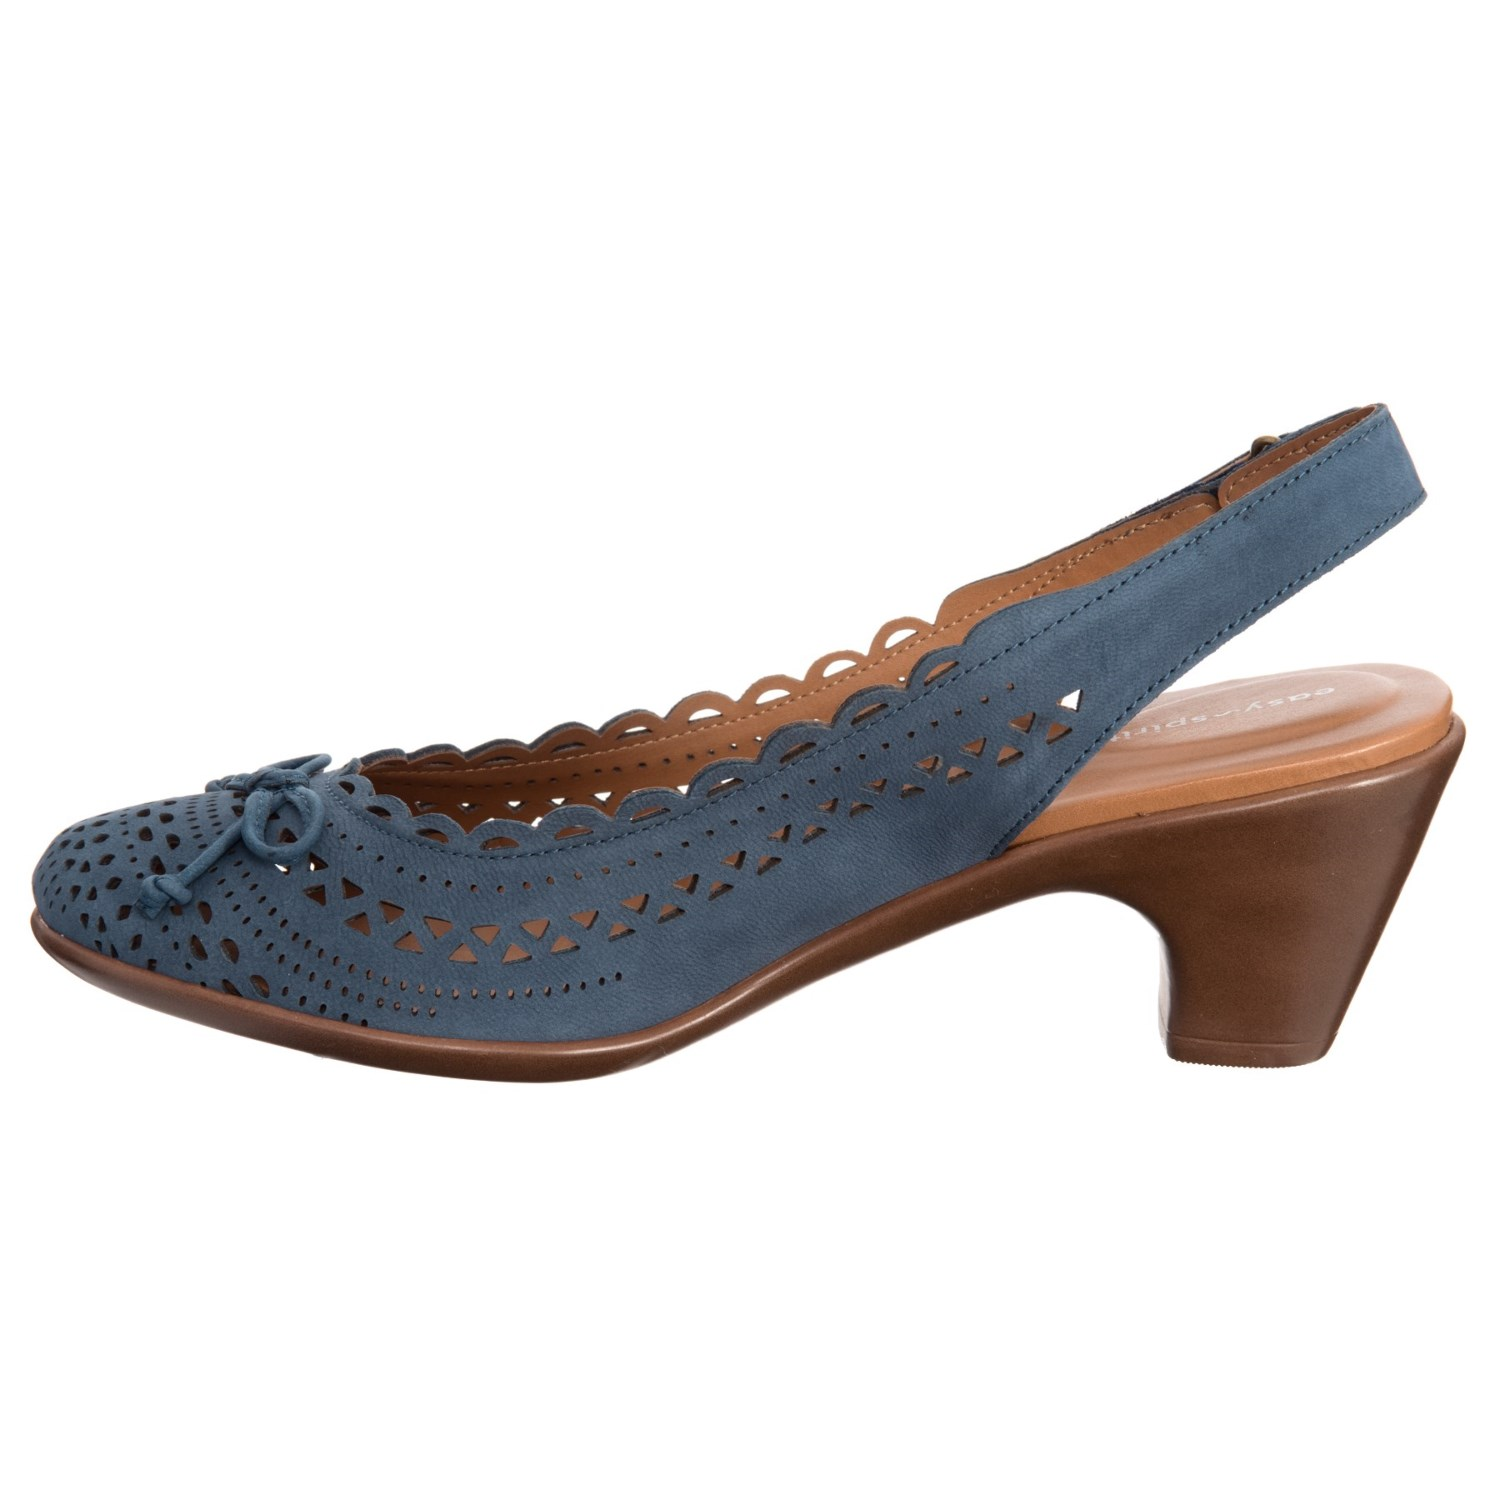 def4b6b503c Easy Spirit Chatt Slingback Shoes (For Women) - Save 25%